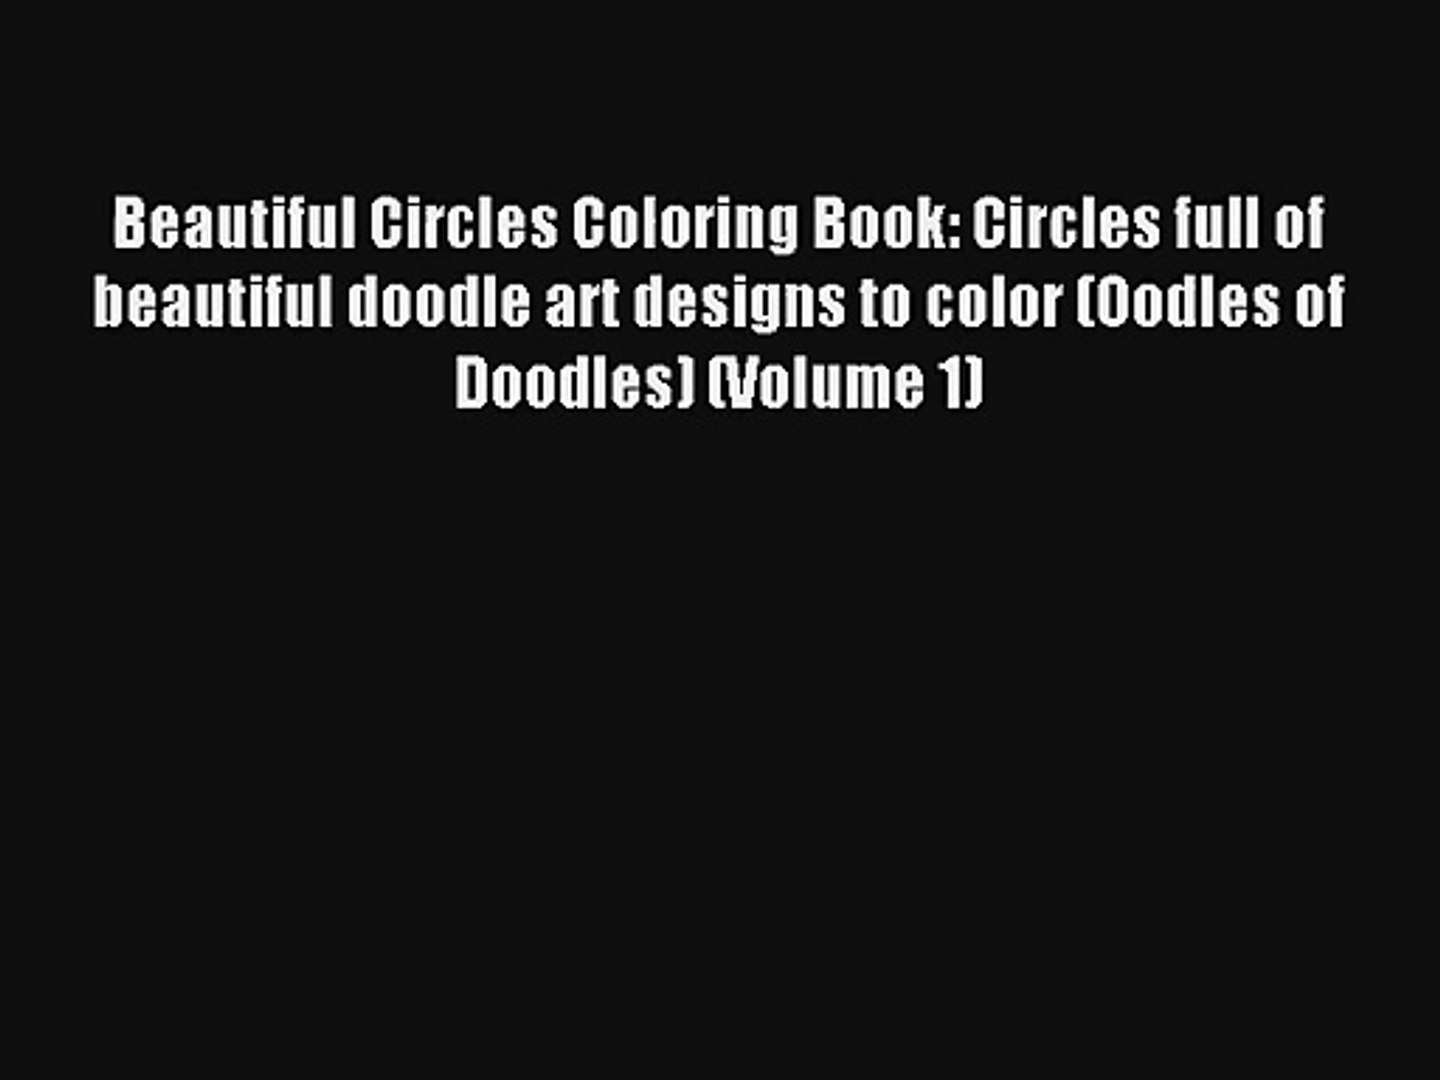 Beautiful Circles Coloring Book: Circles full of beautiful doodle art designs to color (Oodles